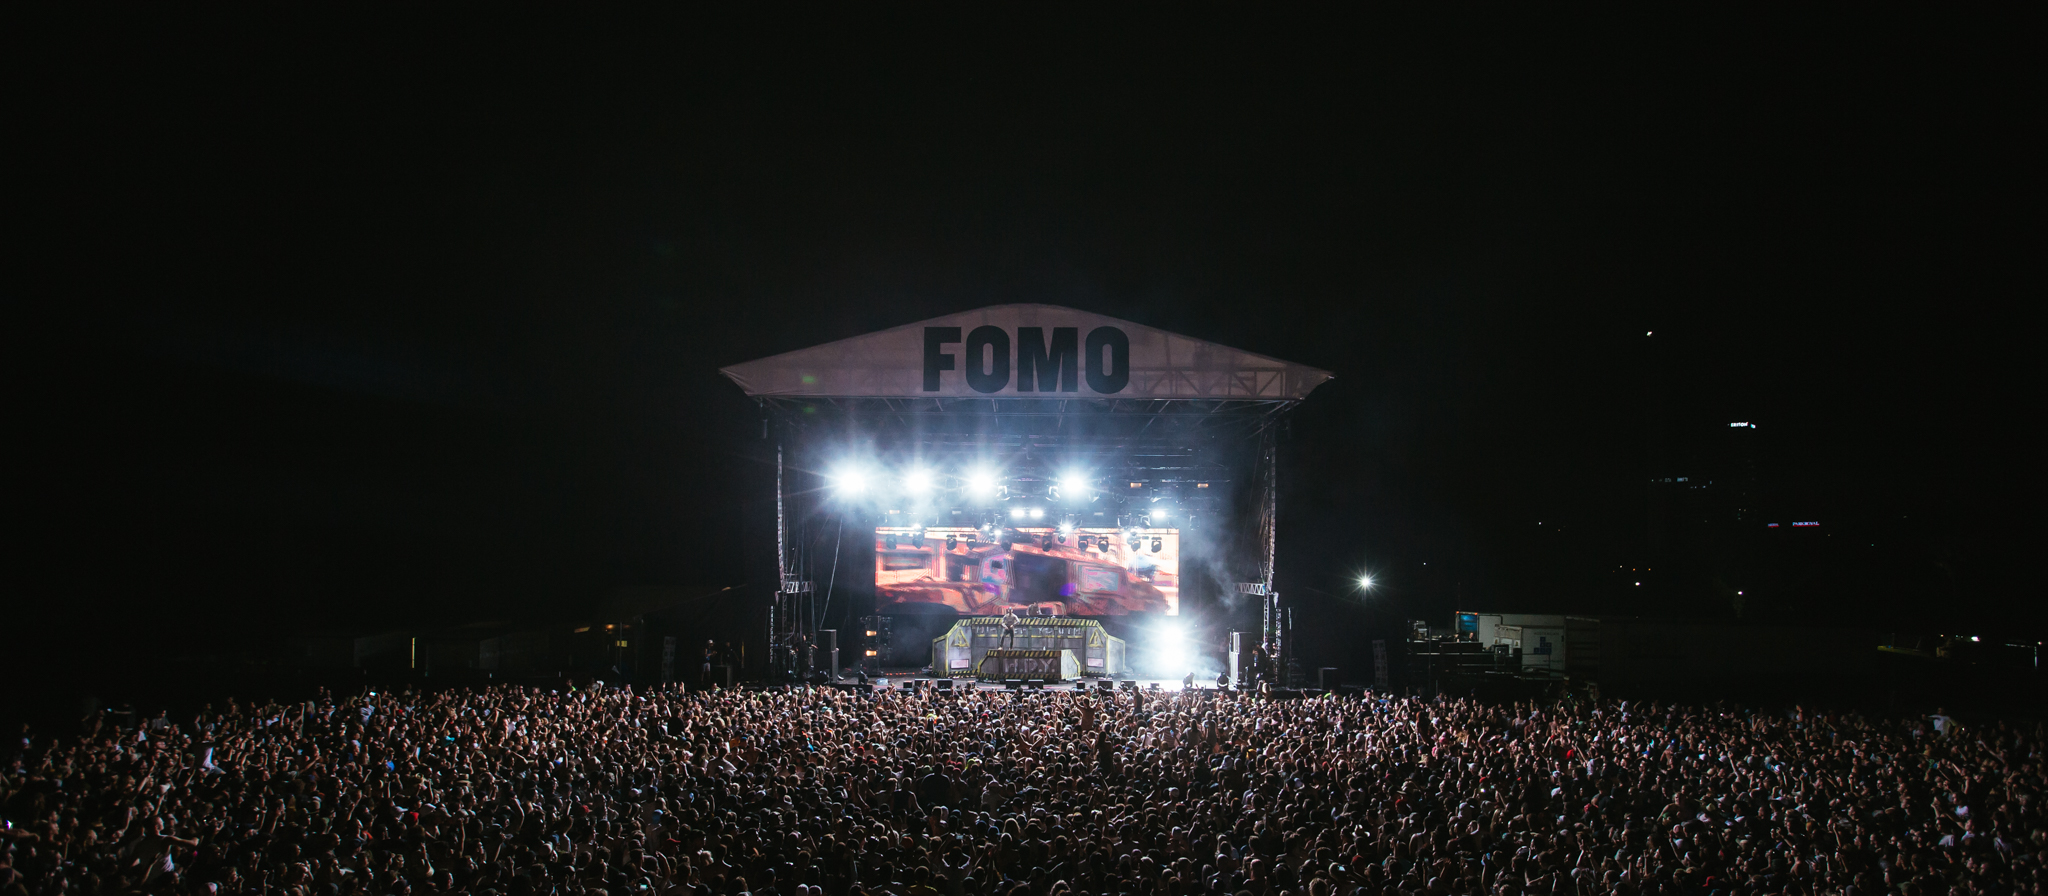 Mitch Lowe Photo - FOMO 2017 Sydney-80.jpg